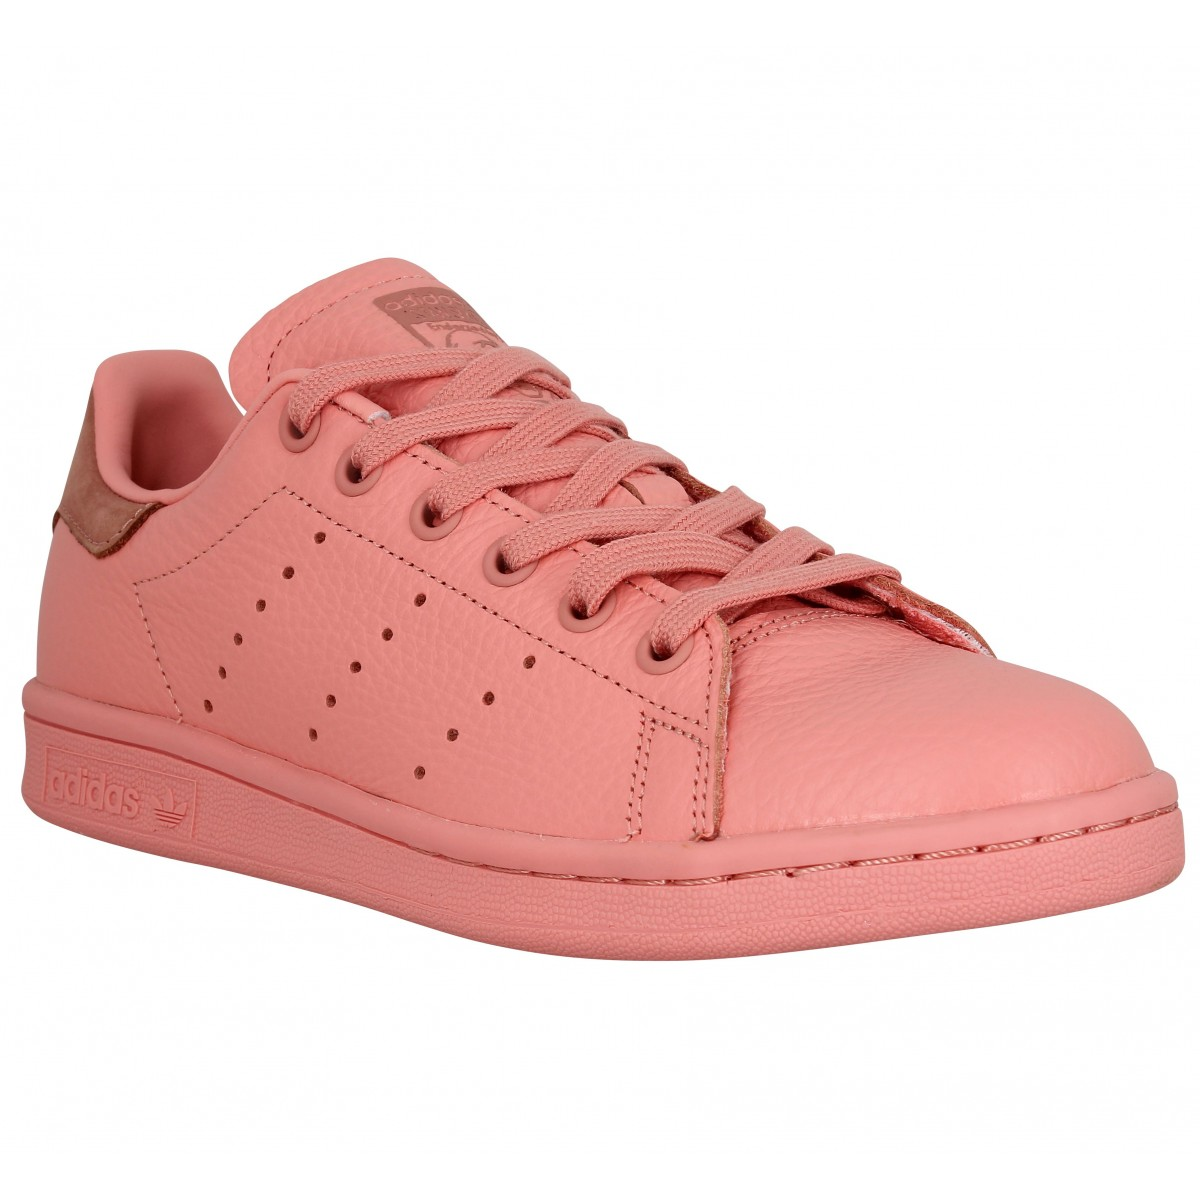 Adidas Stan Smith Cuir Femme Rose Femme Fanny Chaussures